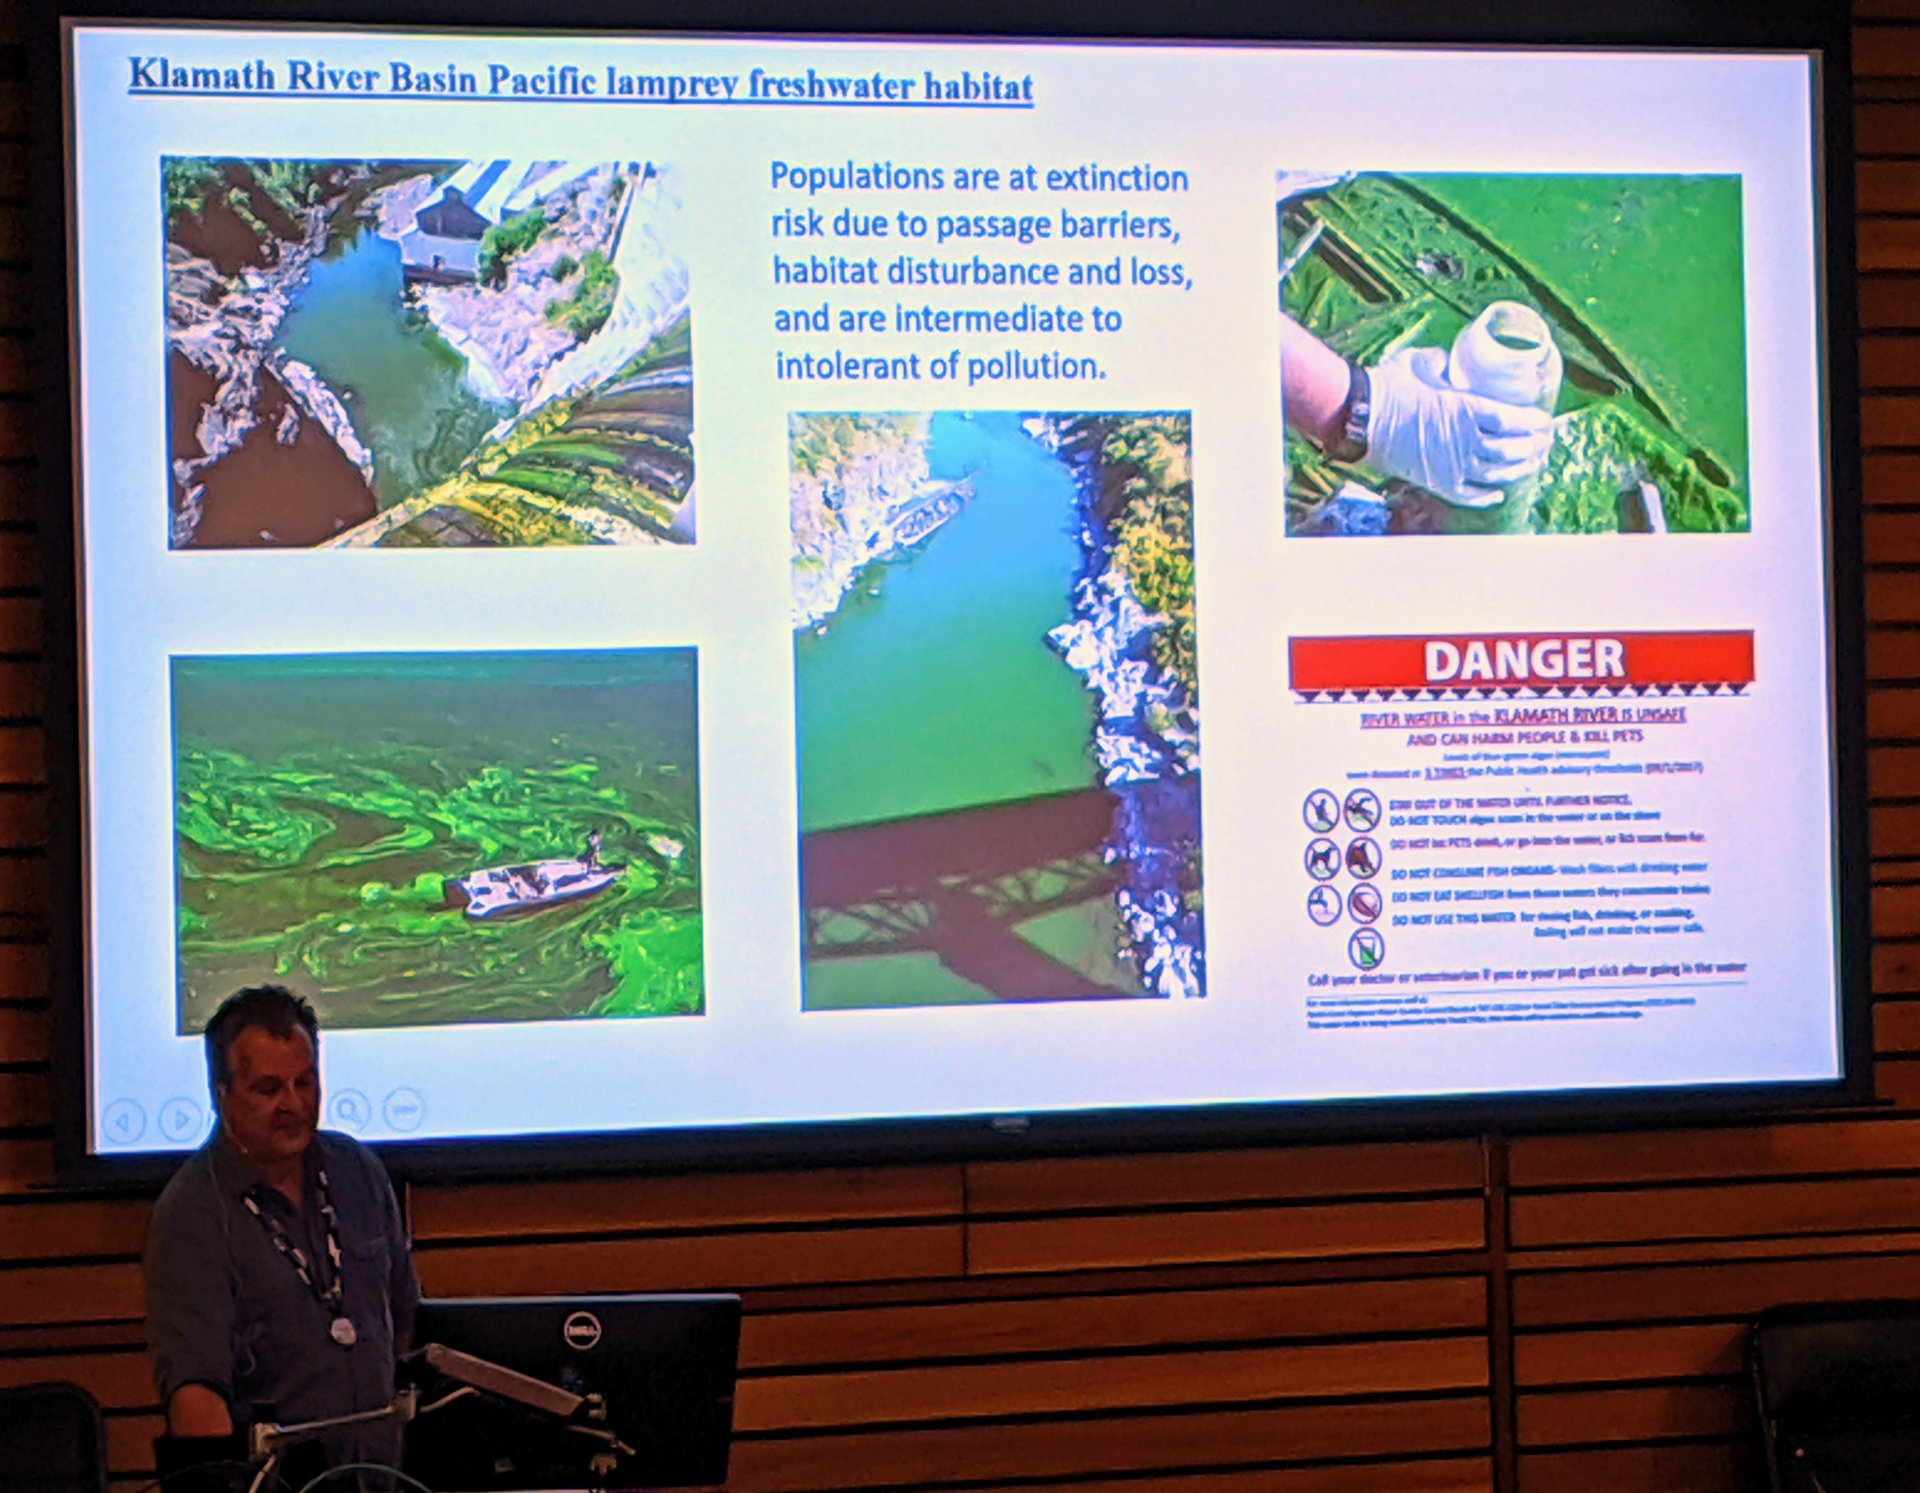 Yurok biologist Keith Parker shows examples of the Klamath River's declining health and blue-green algae growth during his lecture at Humboldt State, on Oct. 18 | Michael Estrada